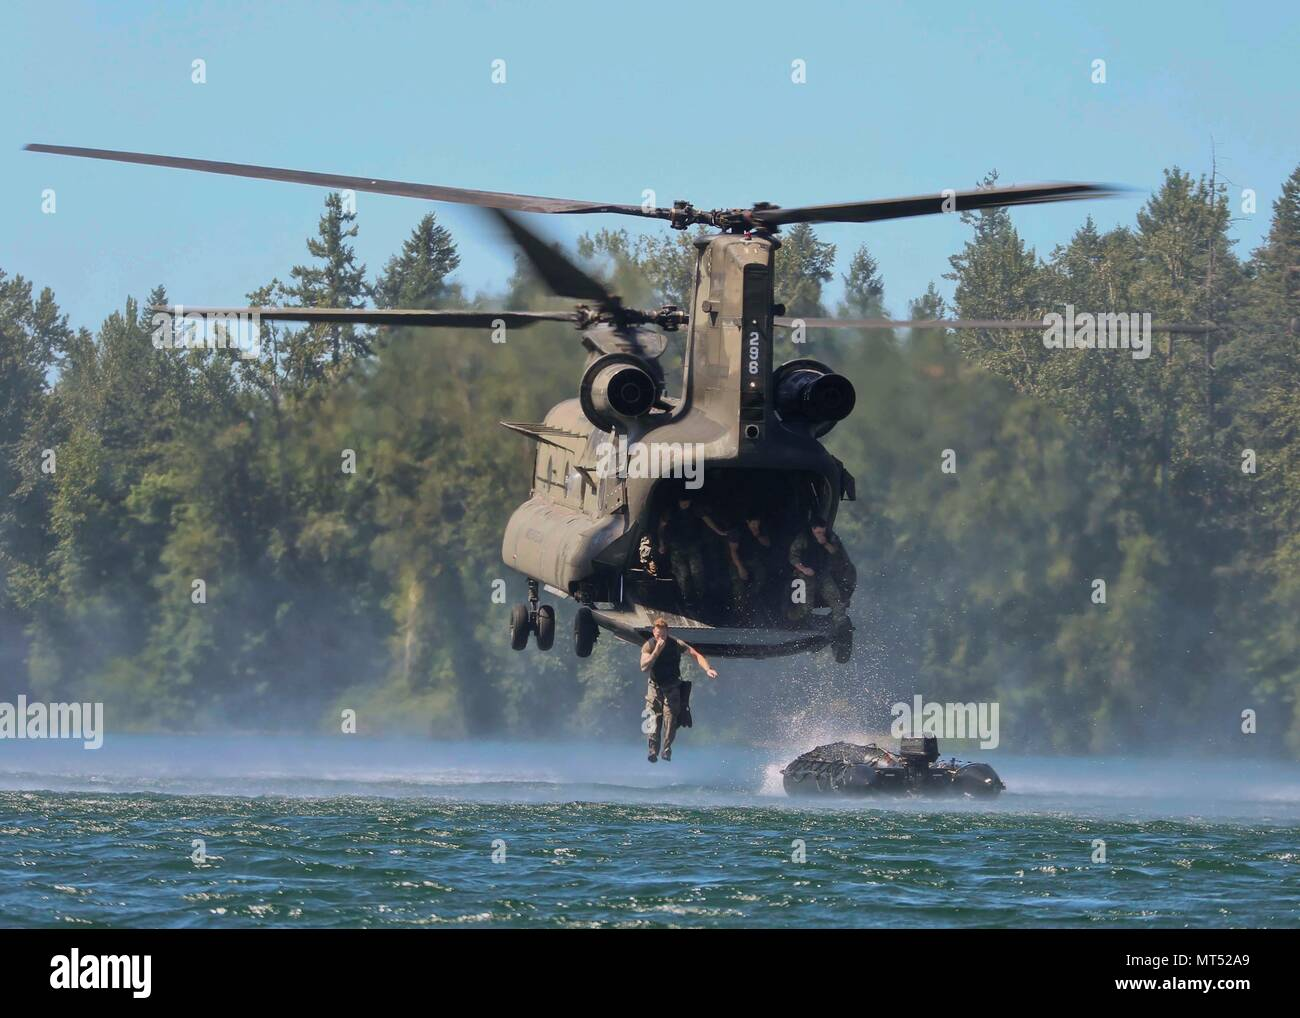 Green Berets assigned to 1st Special Forces Group (Airborne) jump into American Lake after the boat departs out the back of a CH-47 Chinook on Joint Base Lewis-McChord, Washington on July 25, 2017. This is called helocast training and prepares Soldiers to rapidly access a shoreline via helicopter insertion offshore. (U.S. Army Photo by Sgt. Codie Mendenhall/Released) - Stock Image